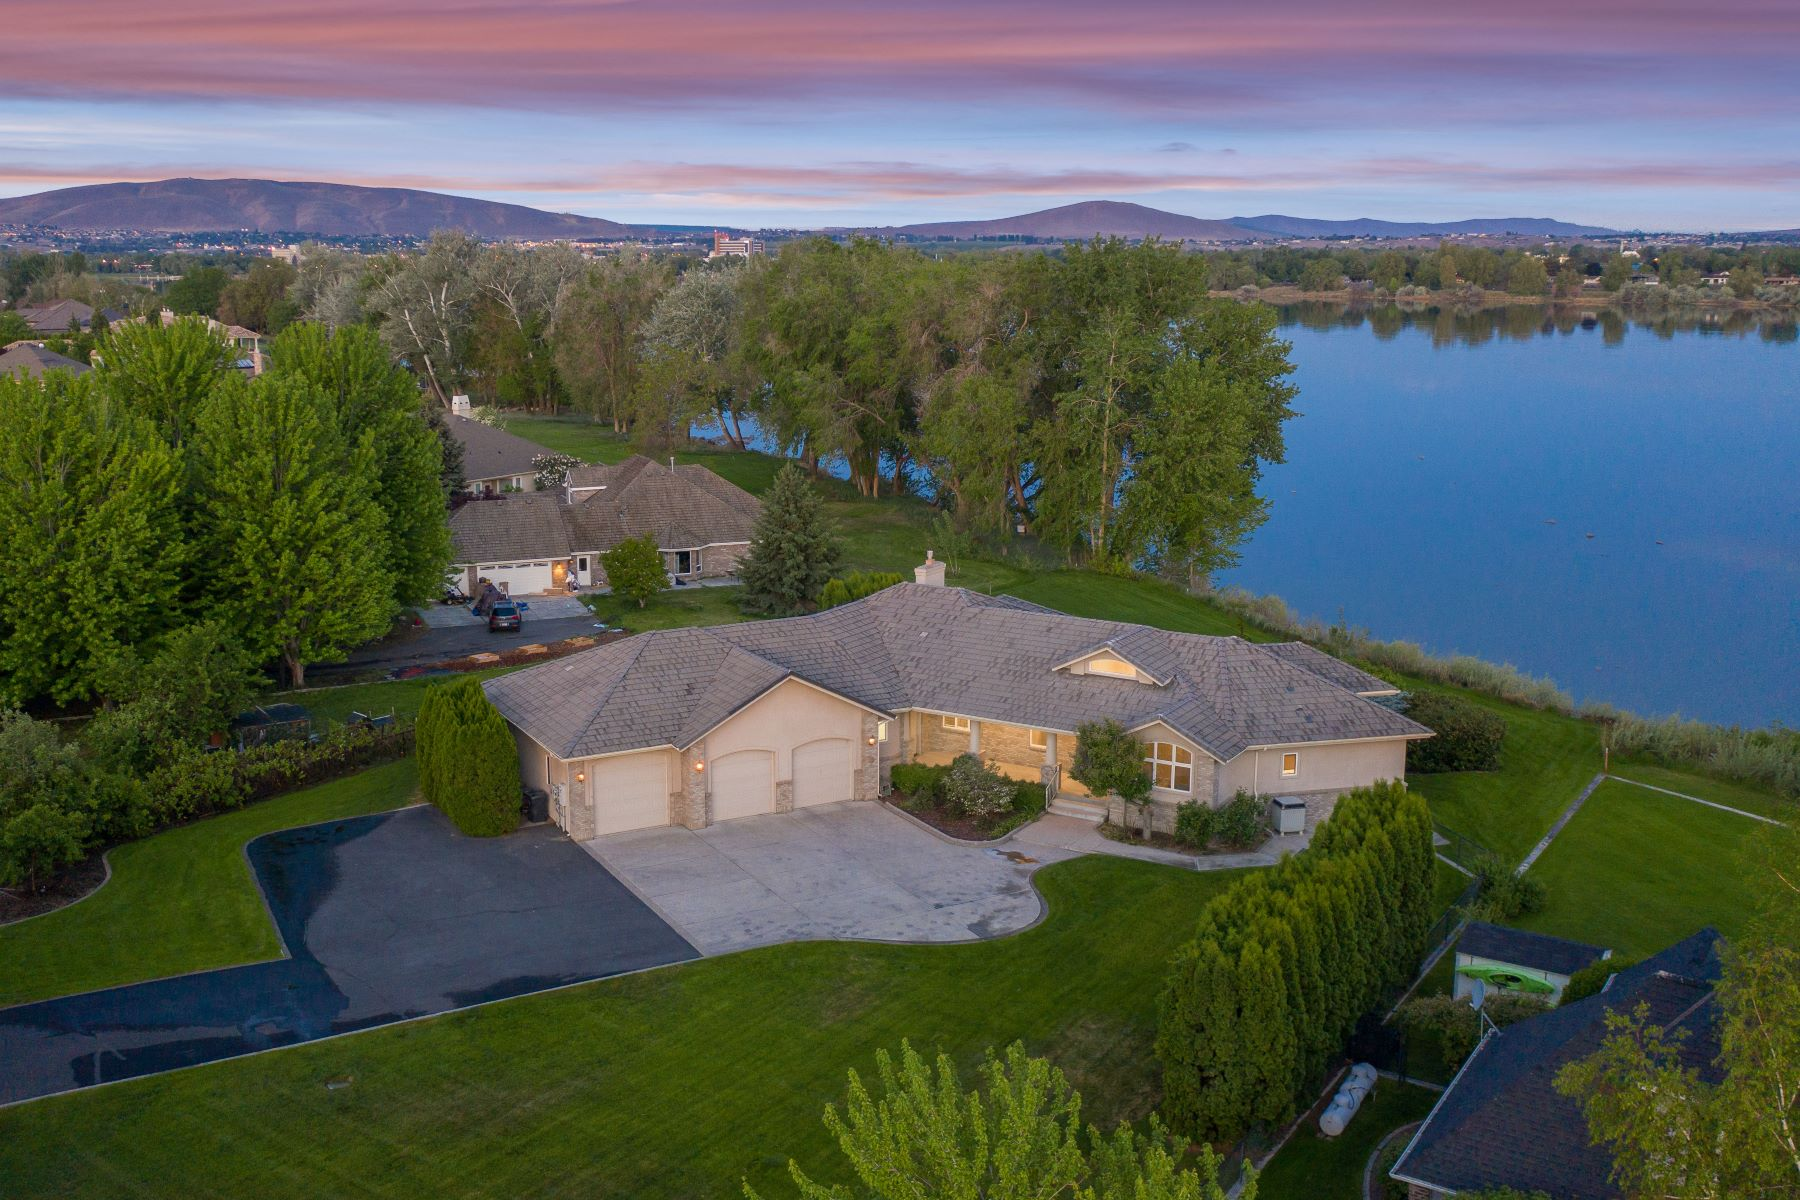 Single Family Homes for Sale at Riverfront Estate 12507 Eagle Reach Court Pasco, Washington 99301 United States